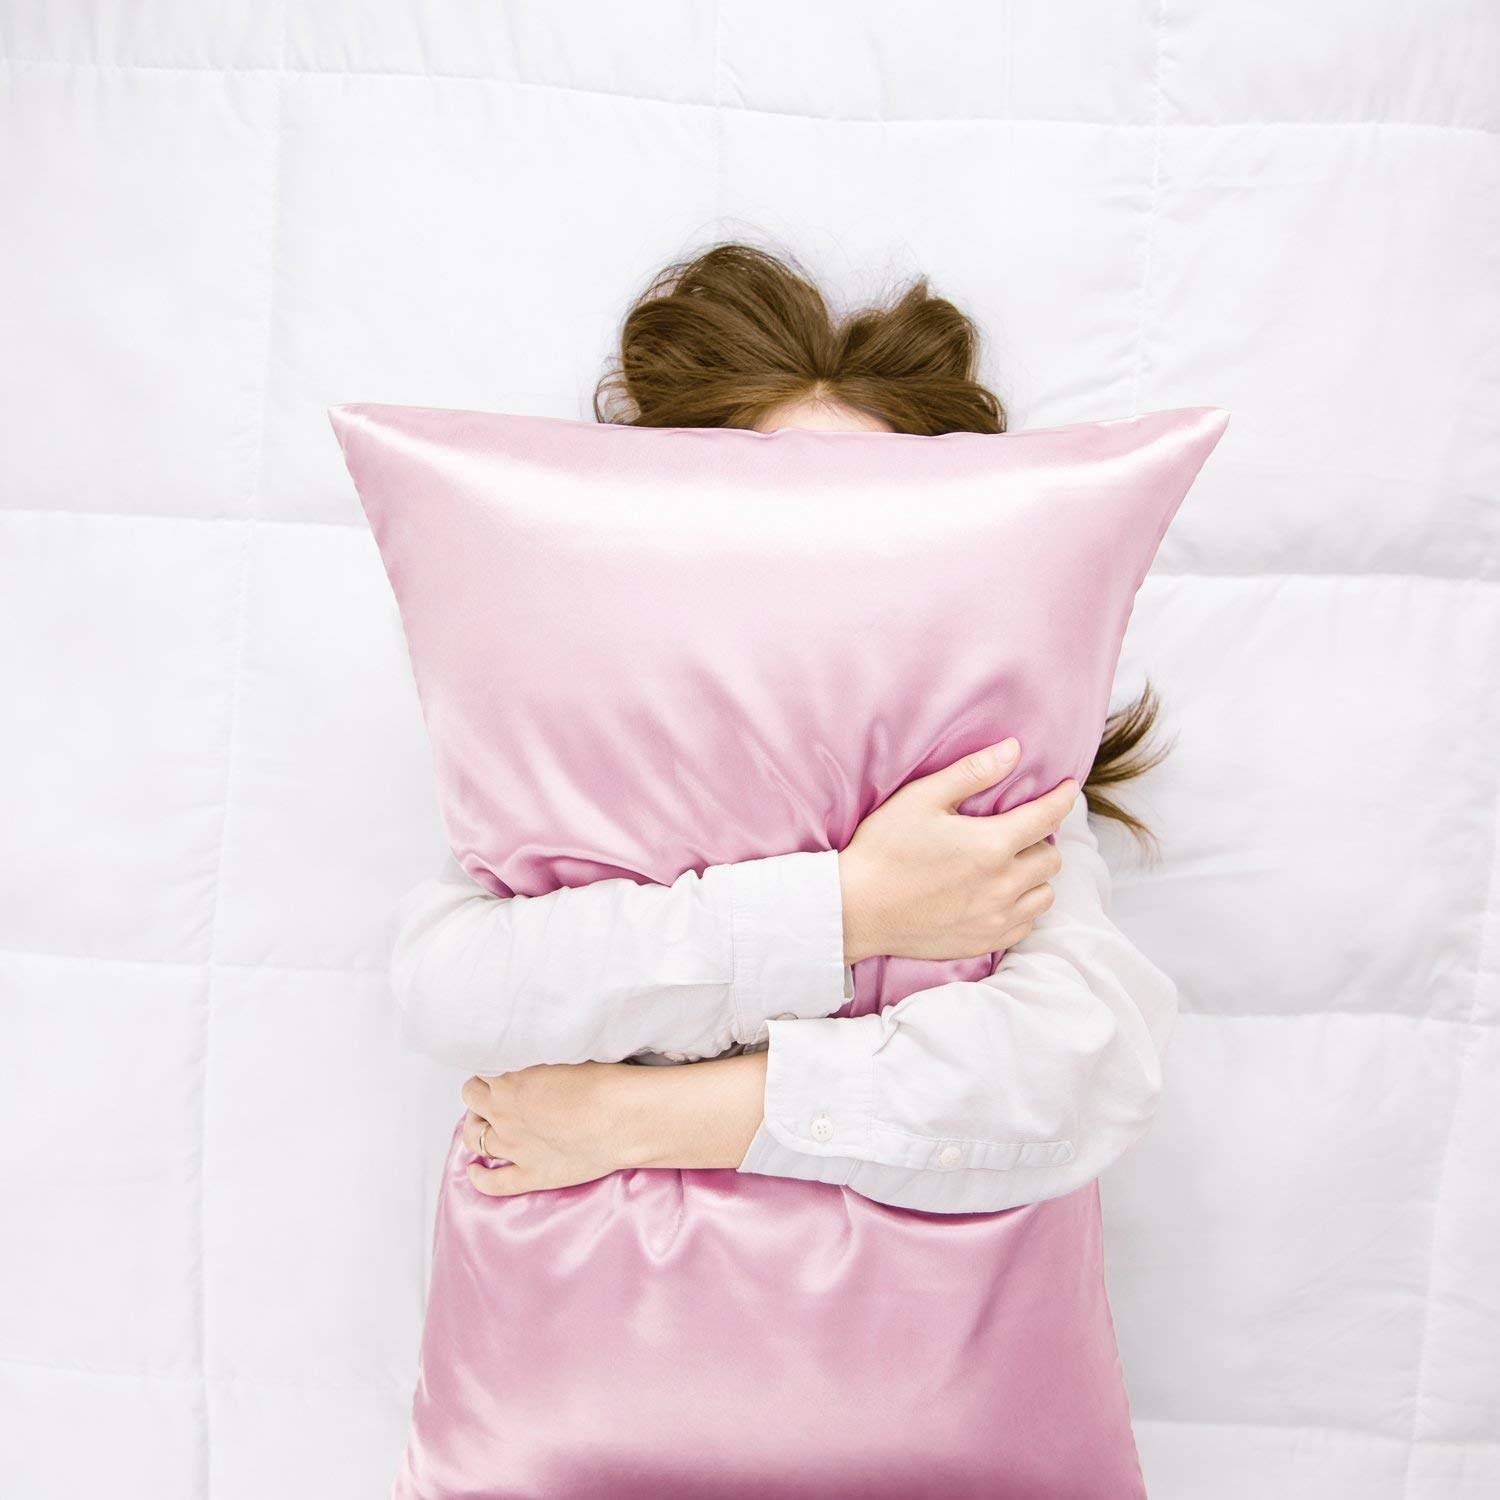 person hugging a pillow with the satin pillowcase on it